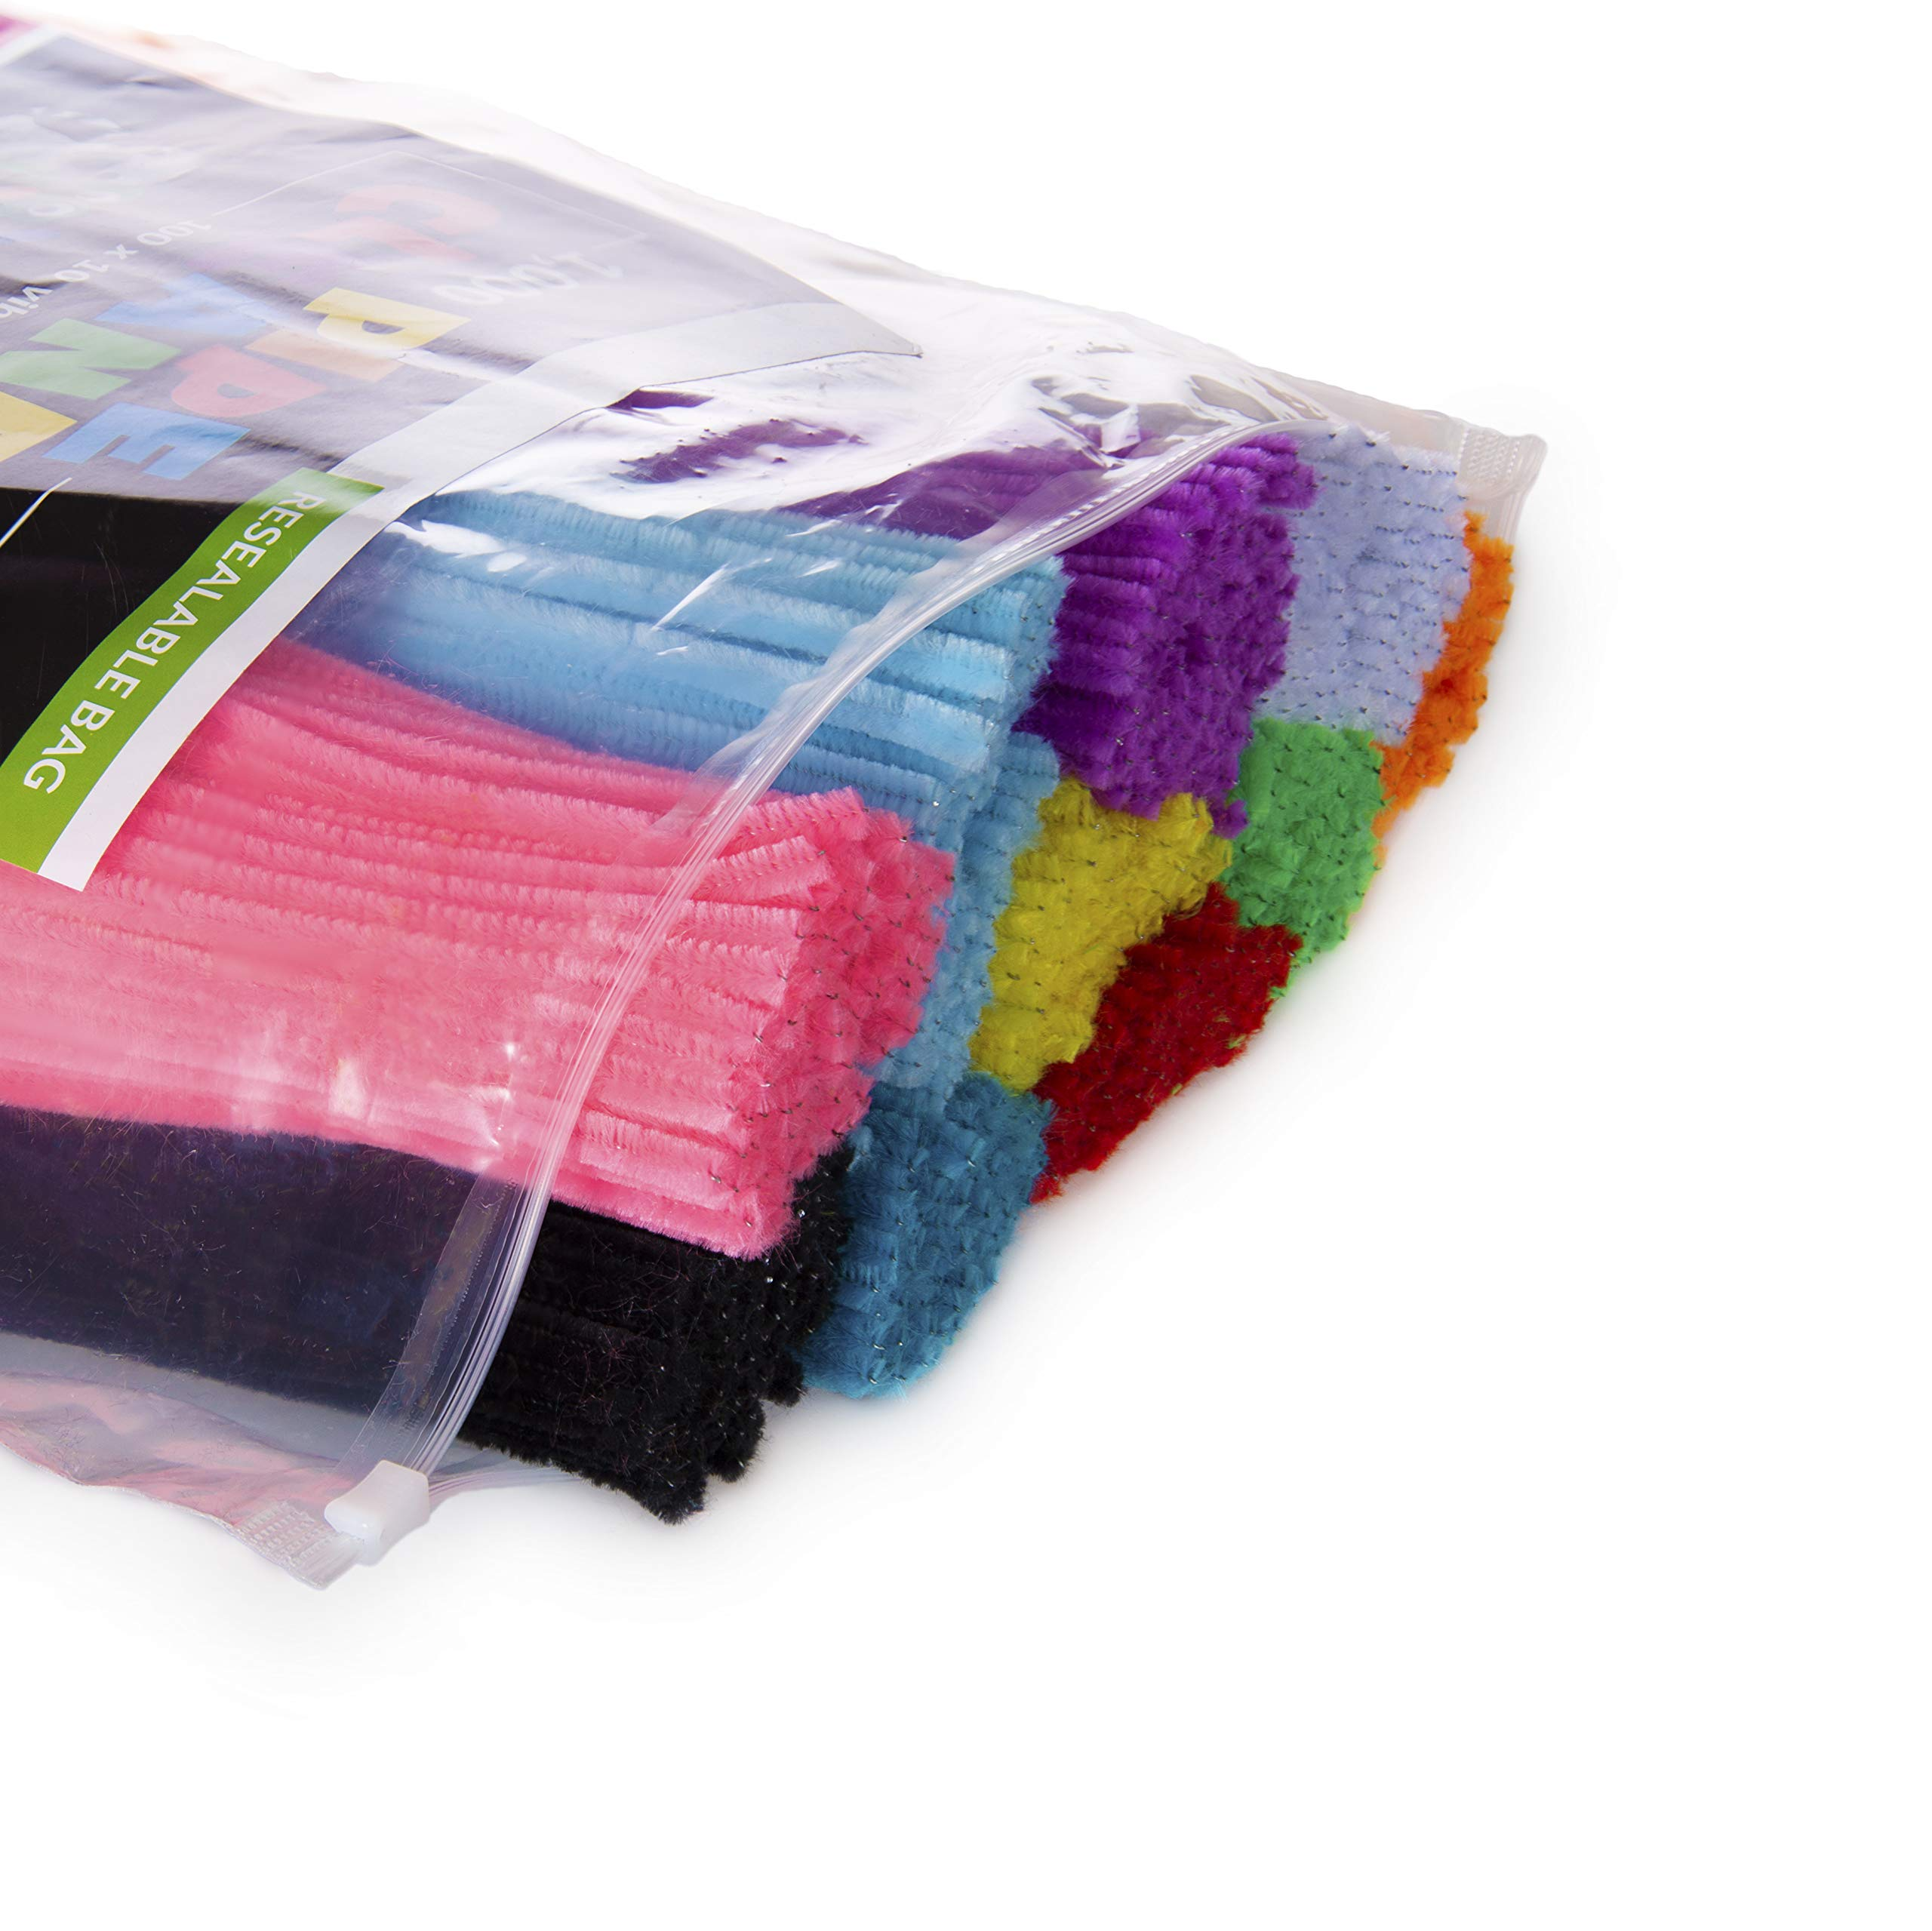 Zees 1,000 Pipe Cleaners in 10 Assorted Colors, Value Pack of Chenille Stems for DIY Arts and Craft Projects and Decorations - 6mm x 12 Inches by zees products (Image #2)